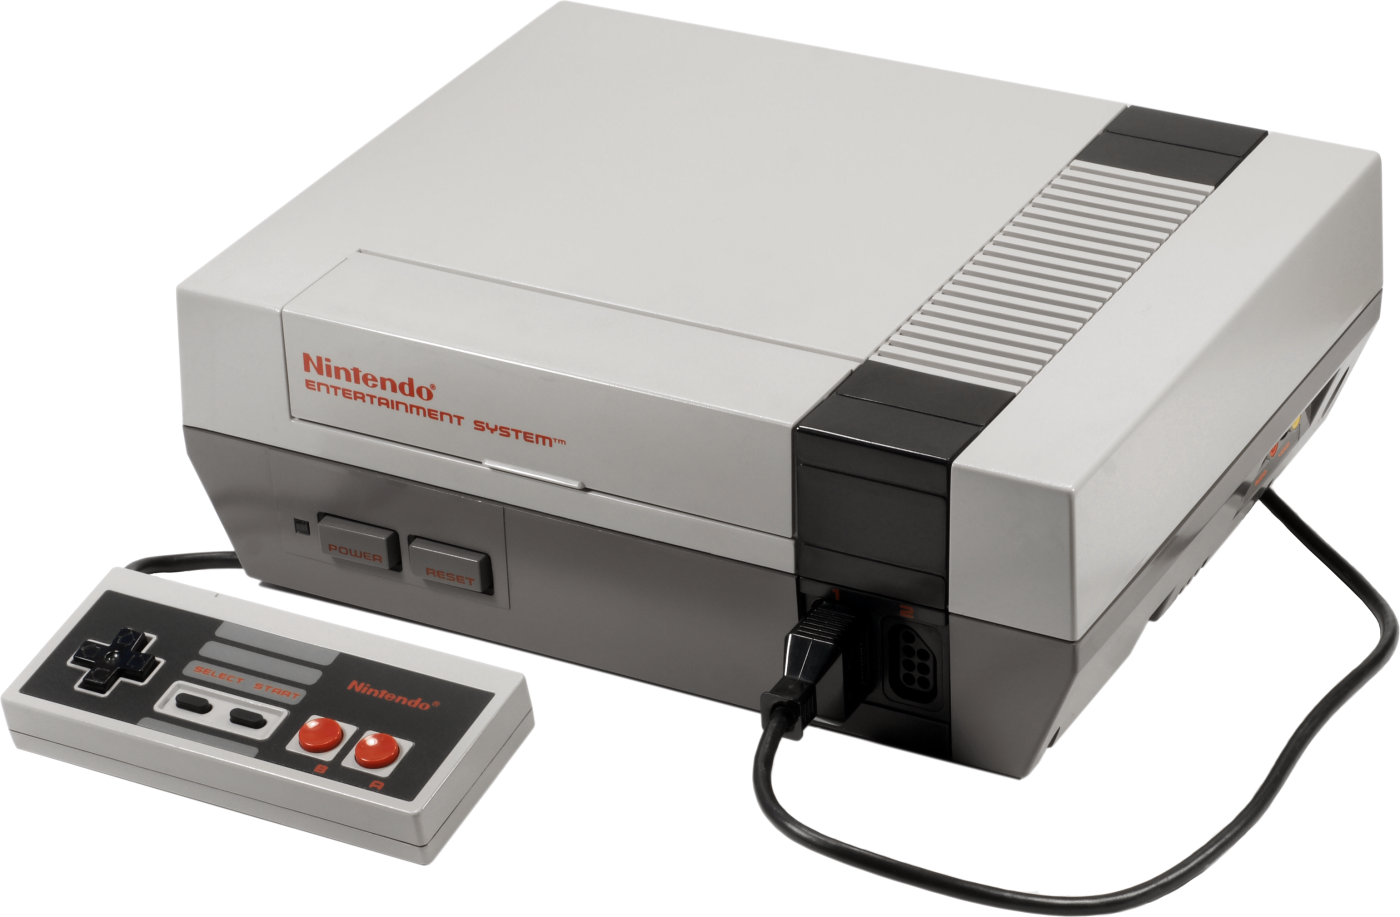 Video game console png. Image nintendo entertainment system